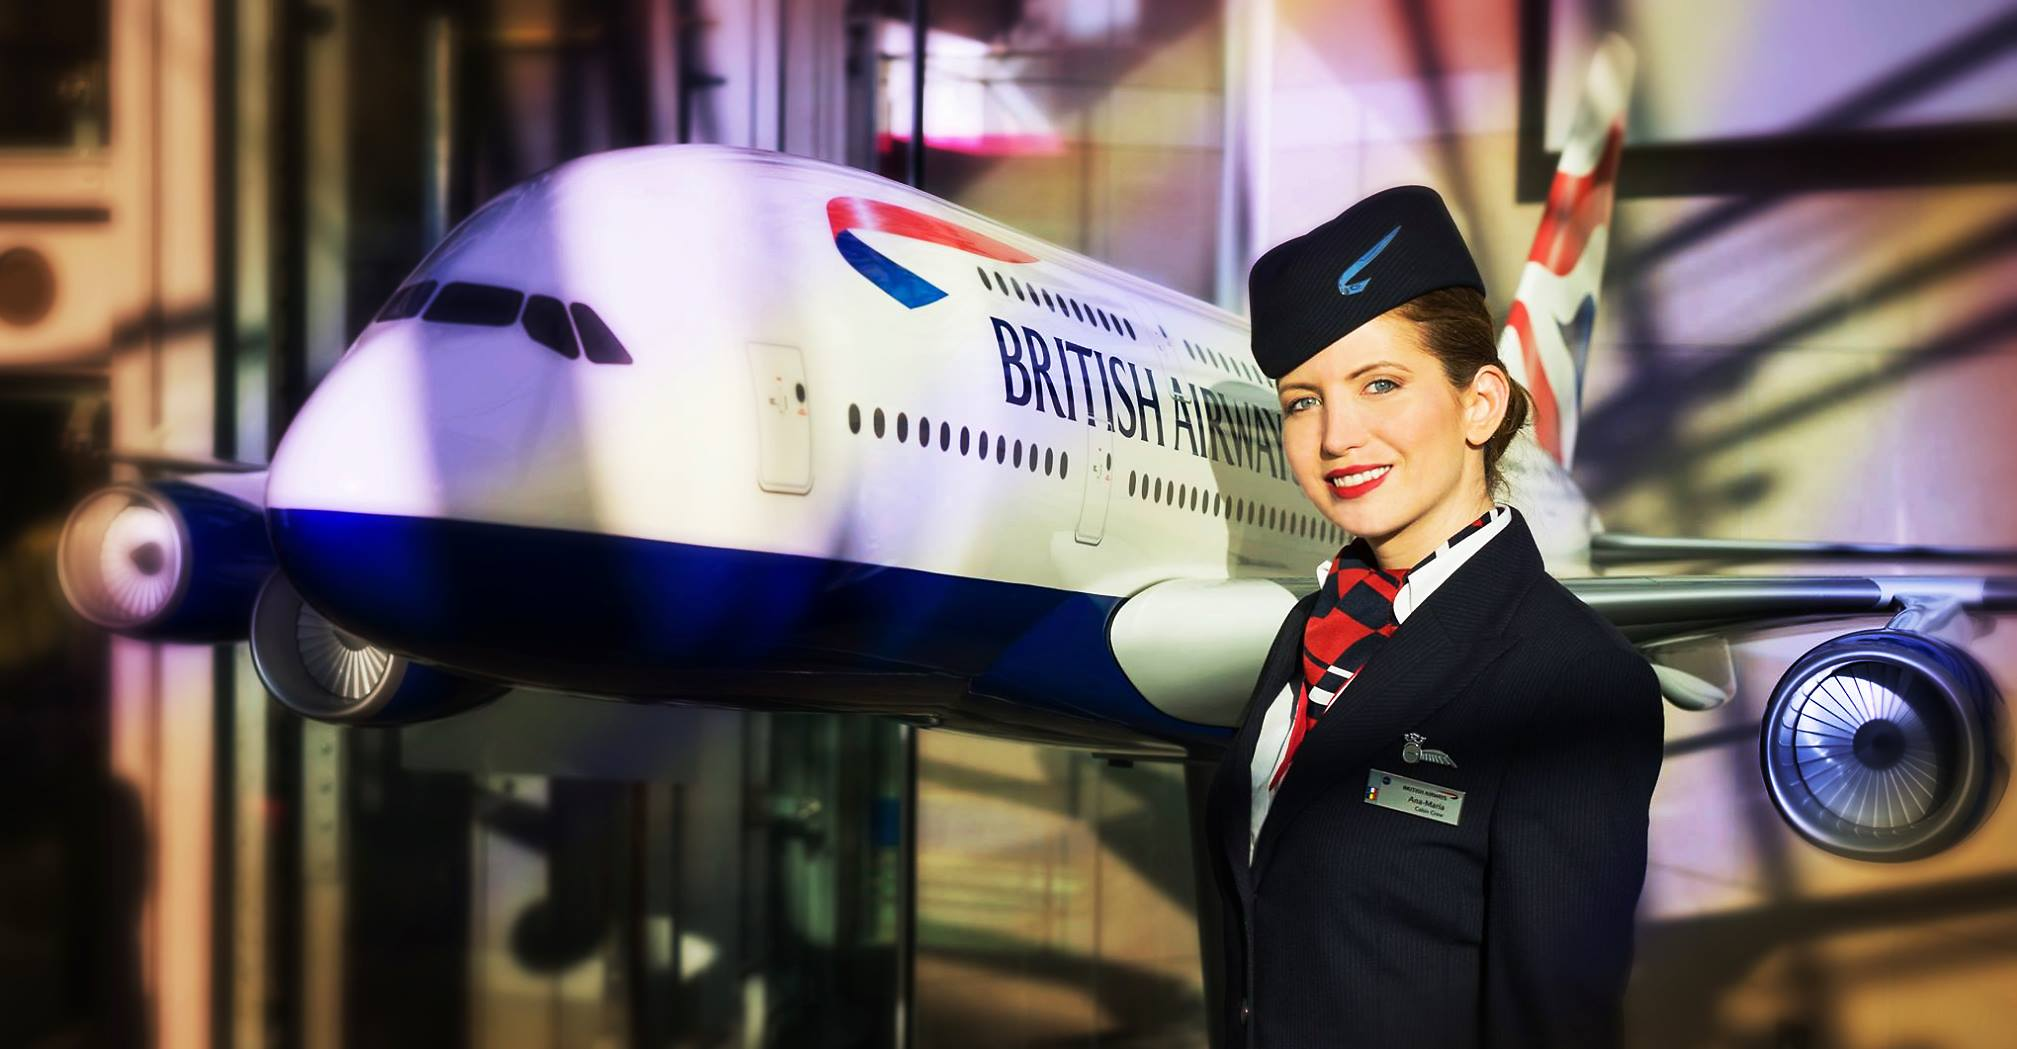 - Our CV review and update service plus one on one interview coaching is now extended to all airlines including British Airways and Virgin Atlantic.